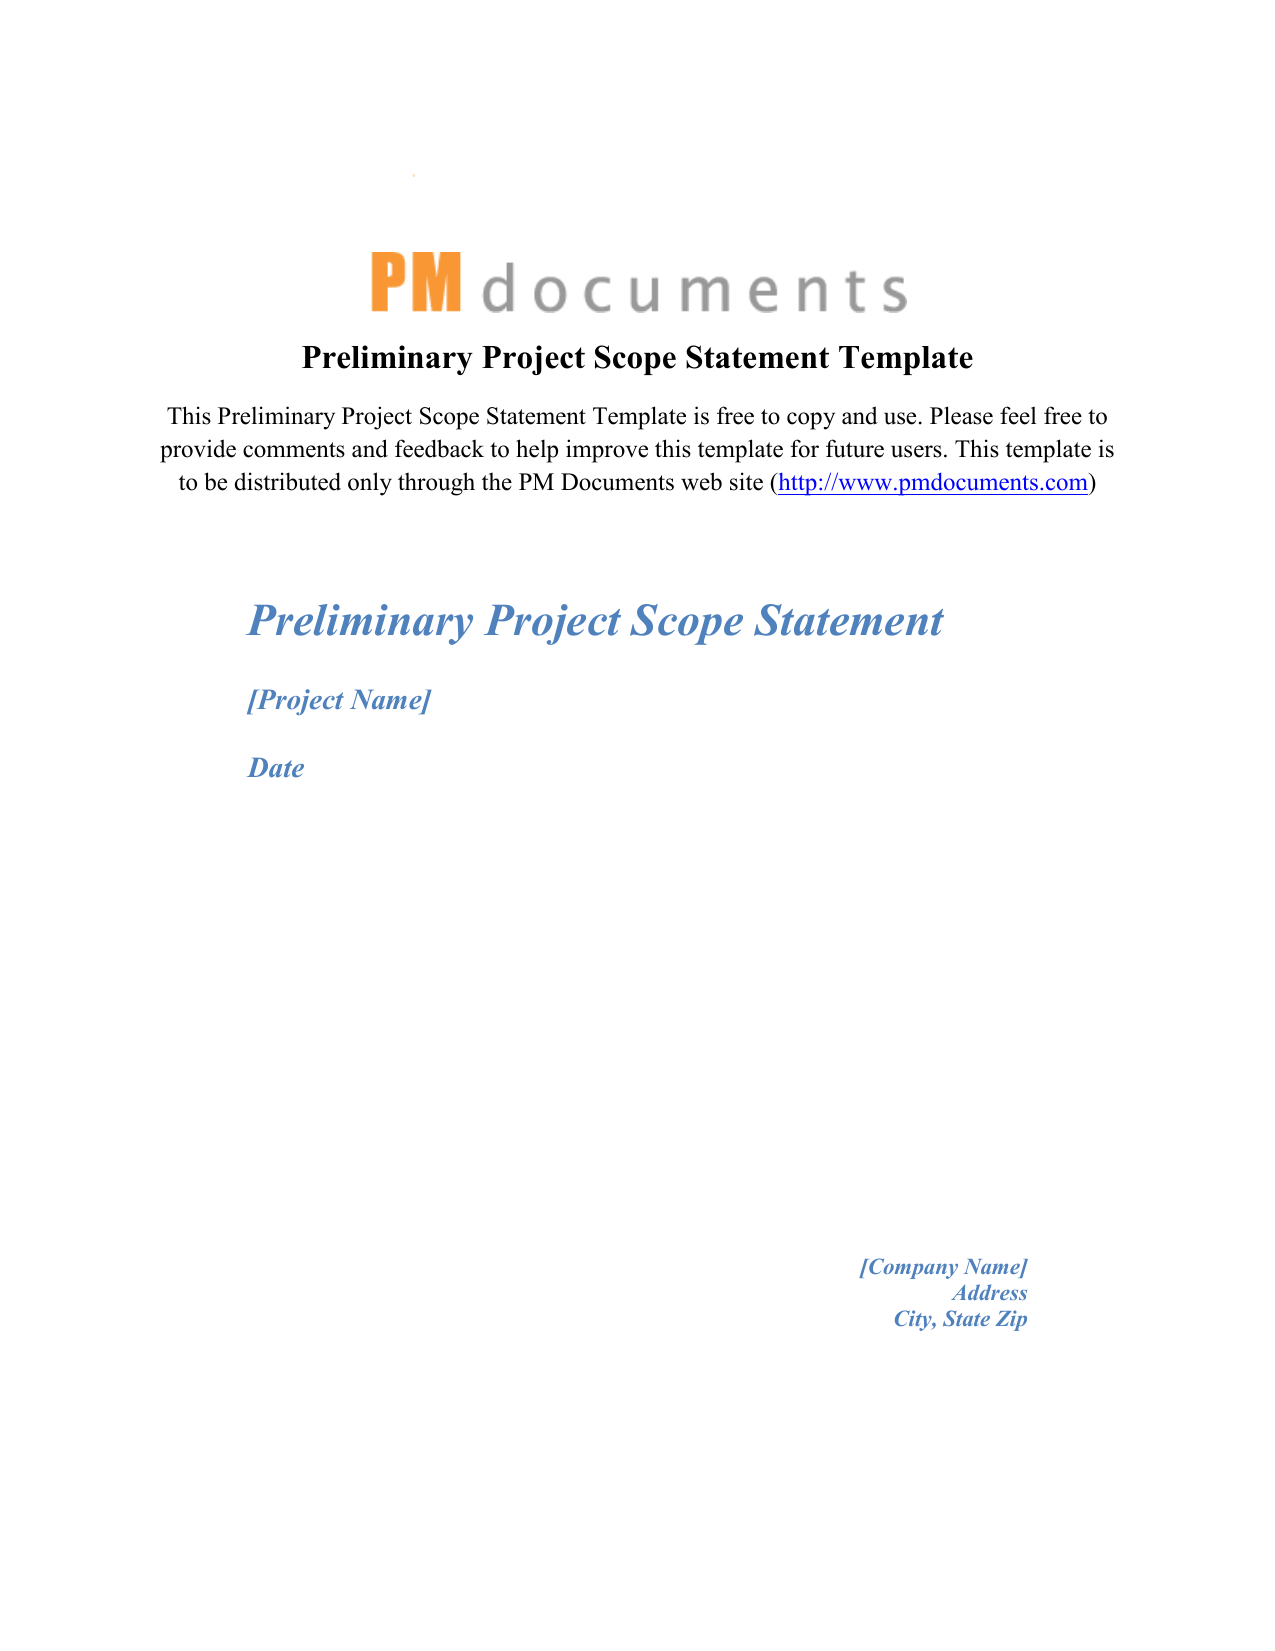 Preliminary Project Scope Statement Template